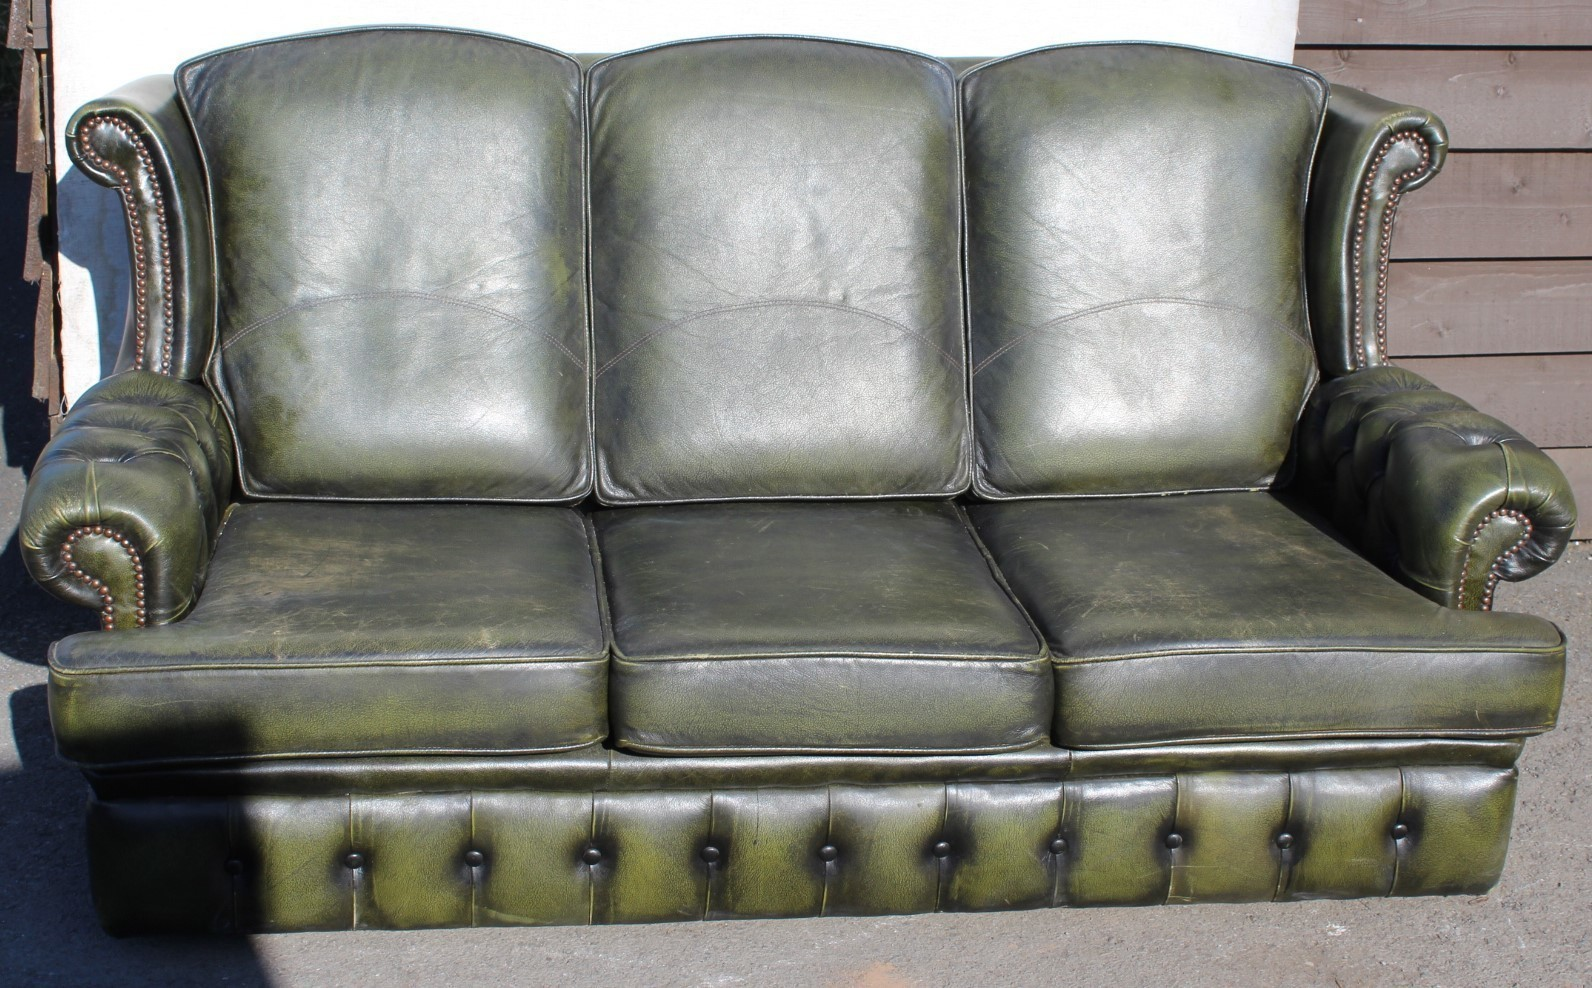 1960s High Back Green Leather 3 Seater Chesterfield Sofa